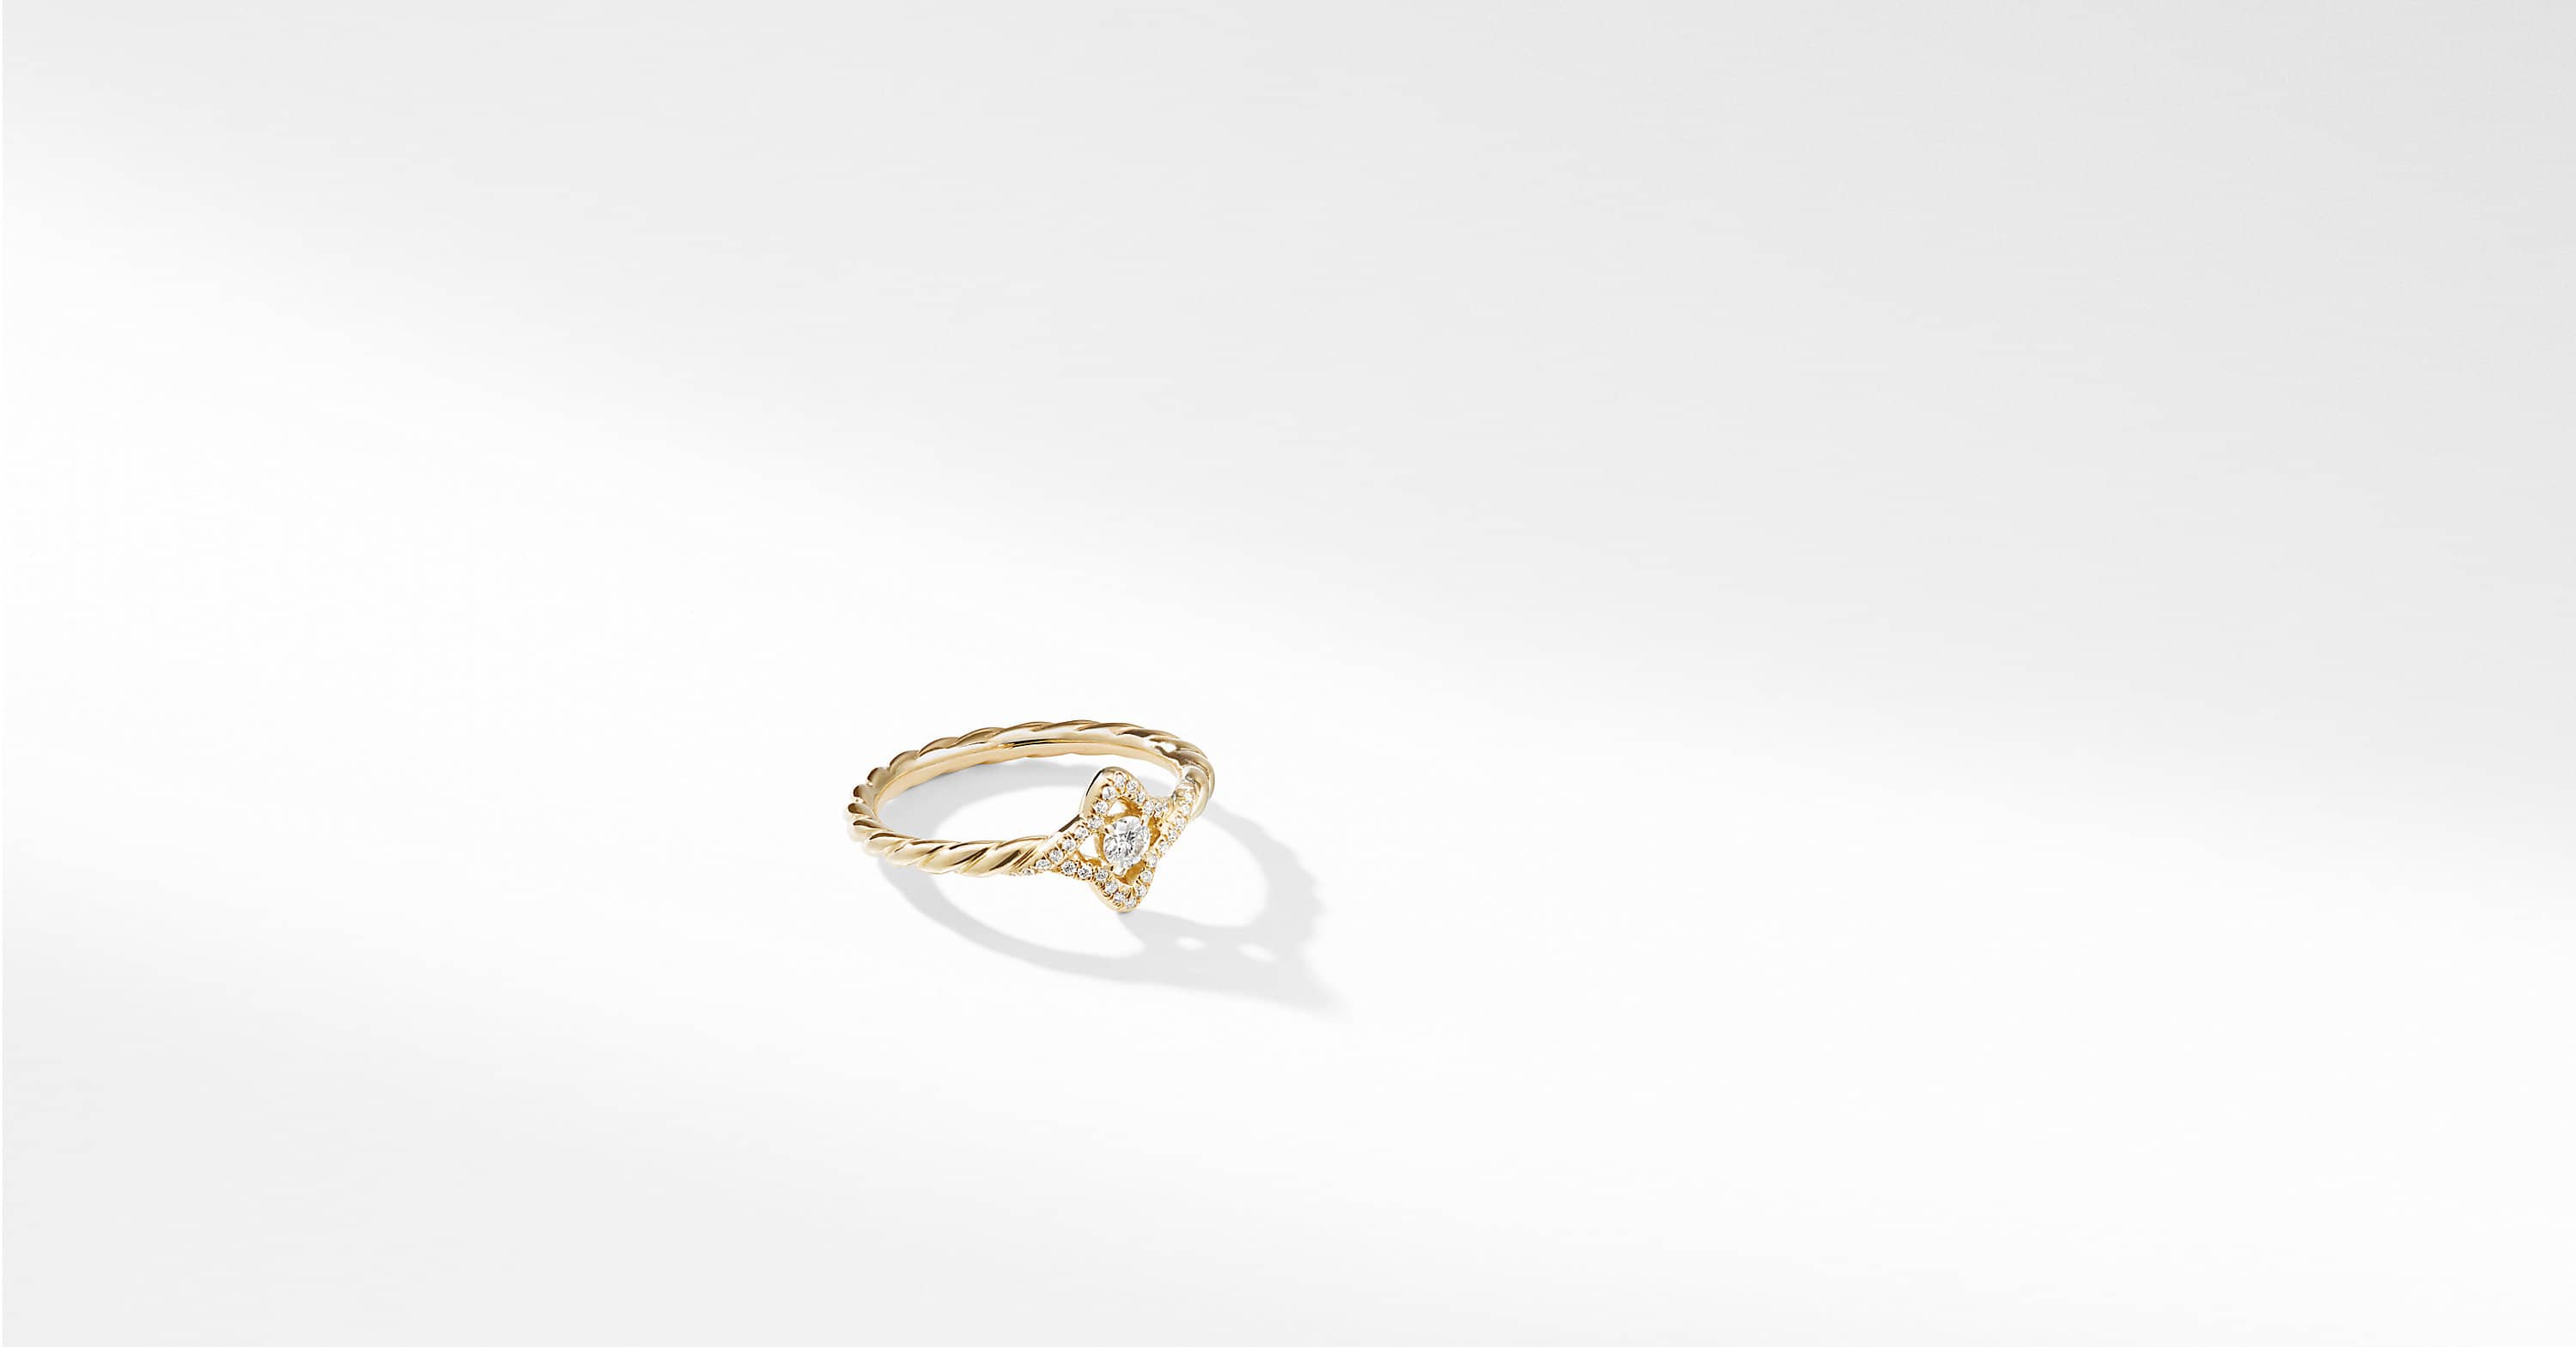 Venetian Quatrefoil Ring with Diamonds in 18K Gold